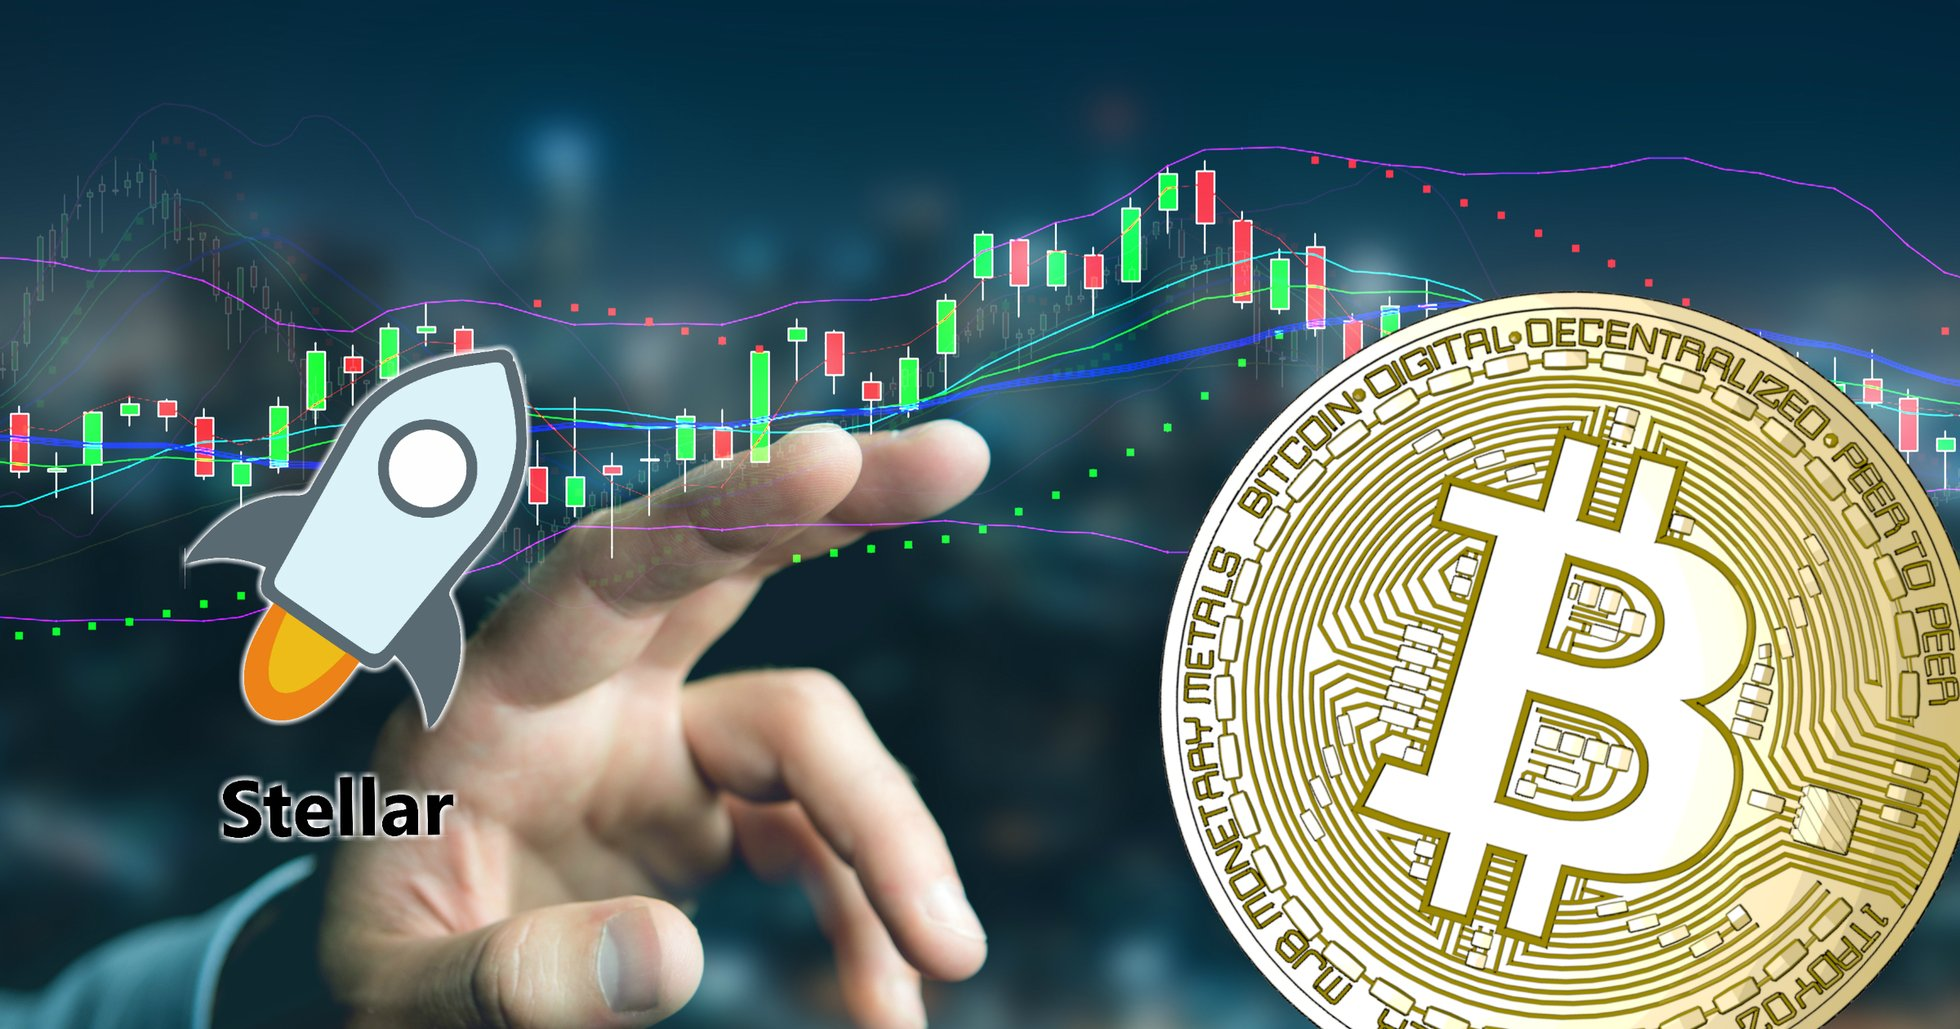 Daily crypto: Markets are going down – stellar is in the green.